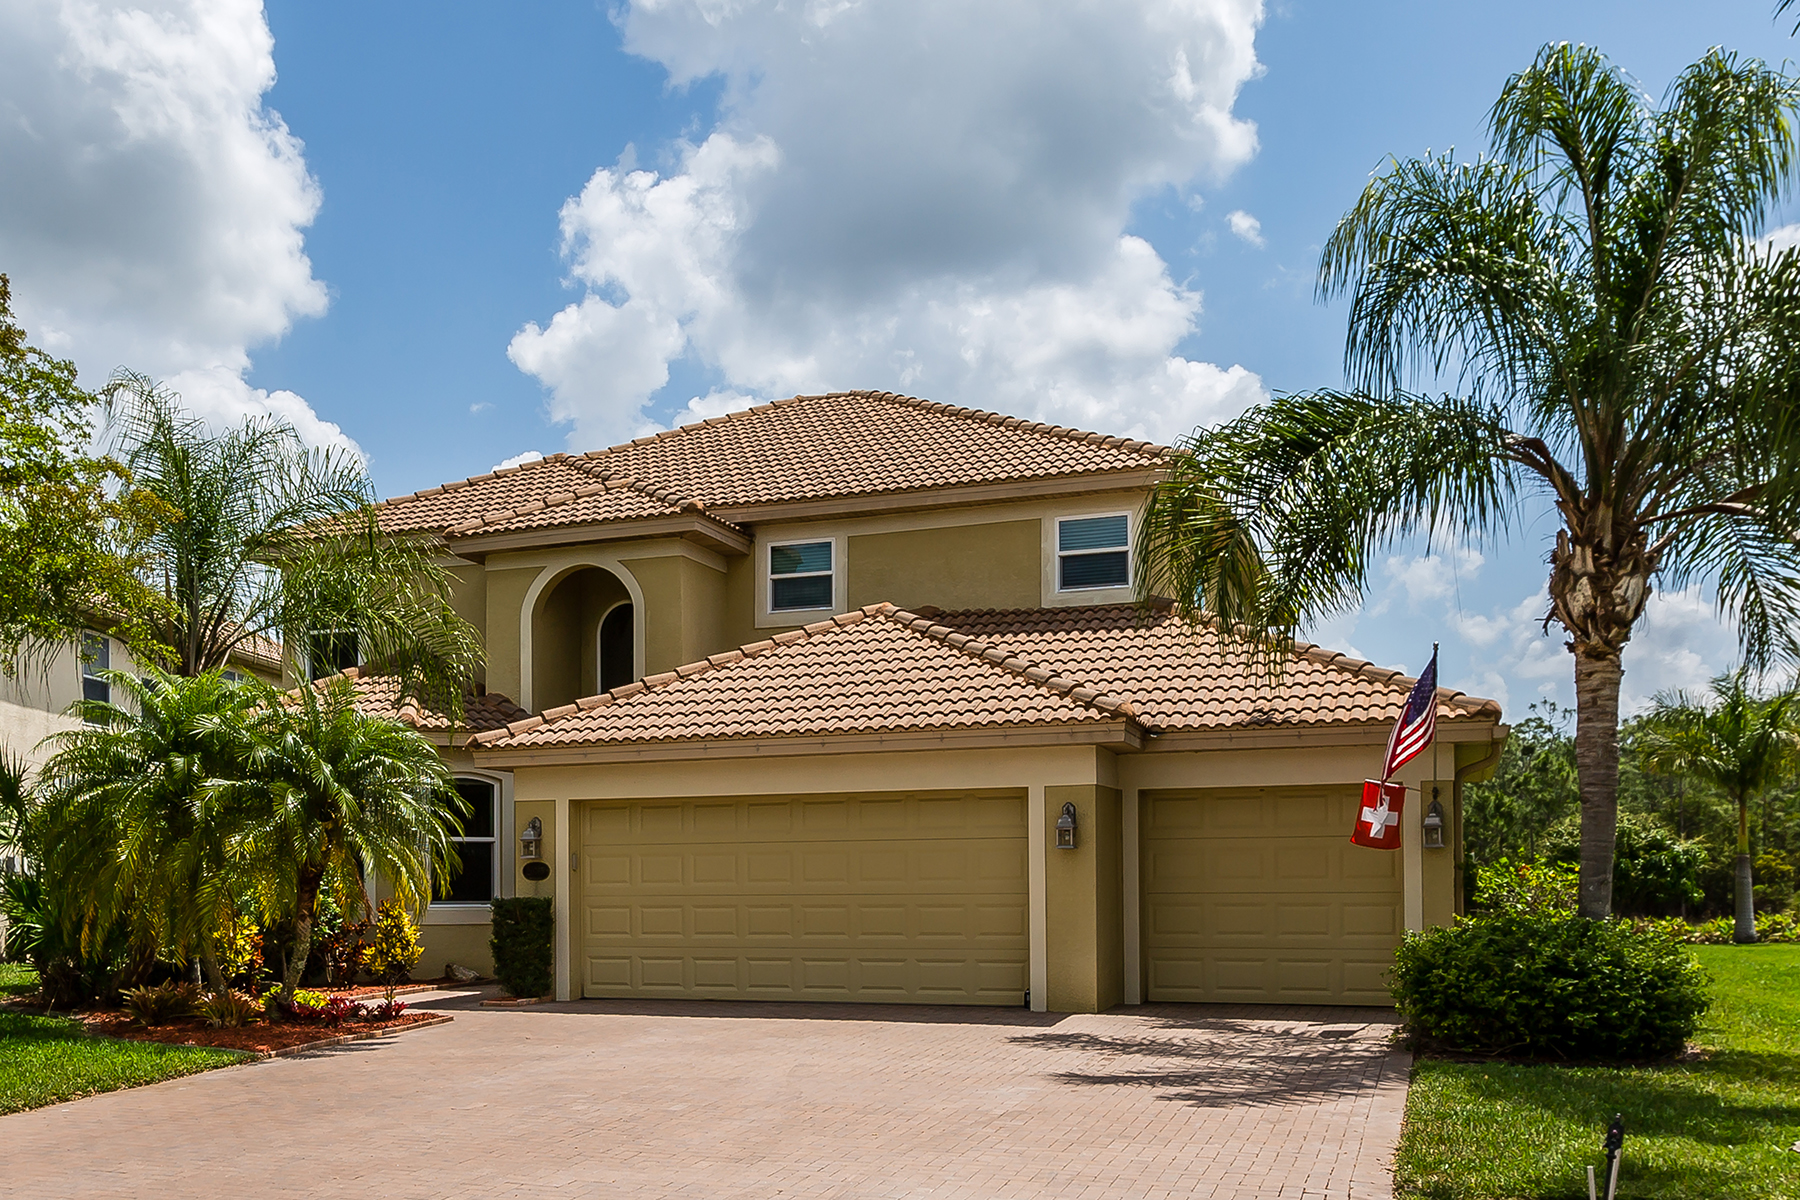 Single Family Home for Sale at BELLA TERRA 20765 Torre Del Lago St Estero, Florida 33928 United States